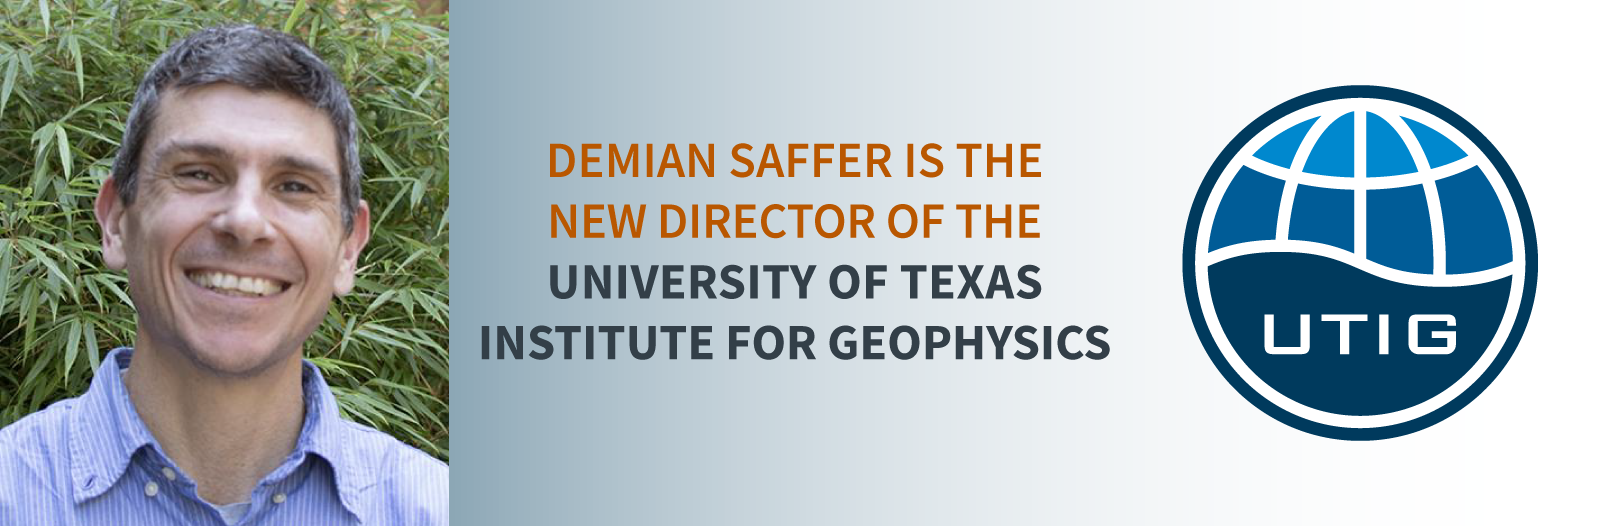 Demian Saffer Named Director of the UT Institute for Geophysics